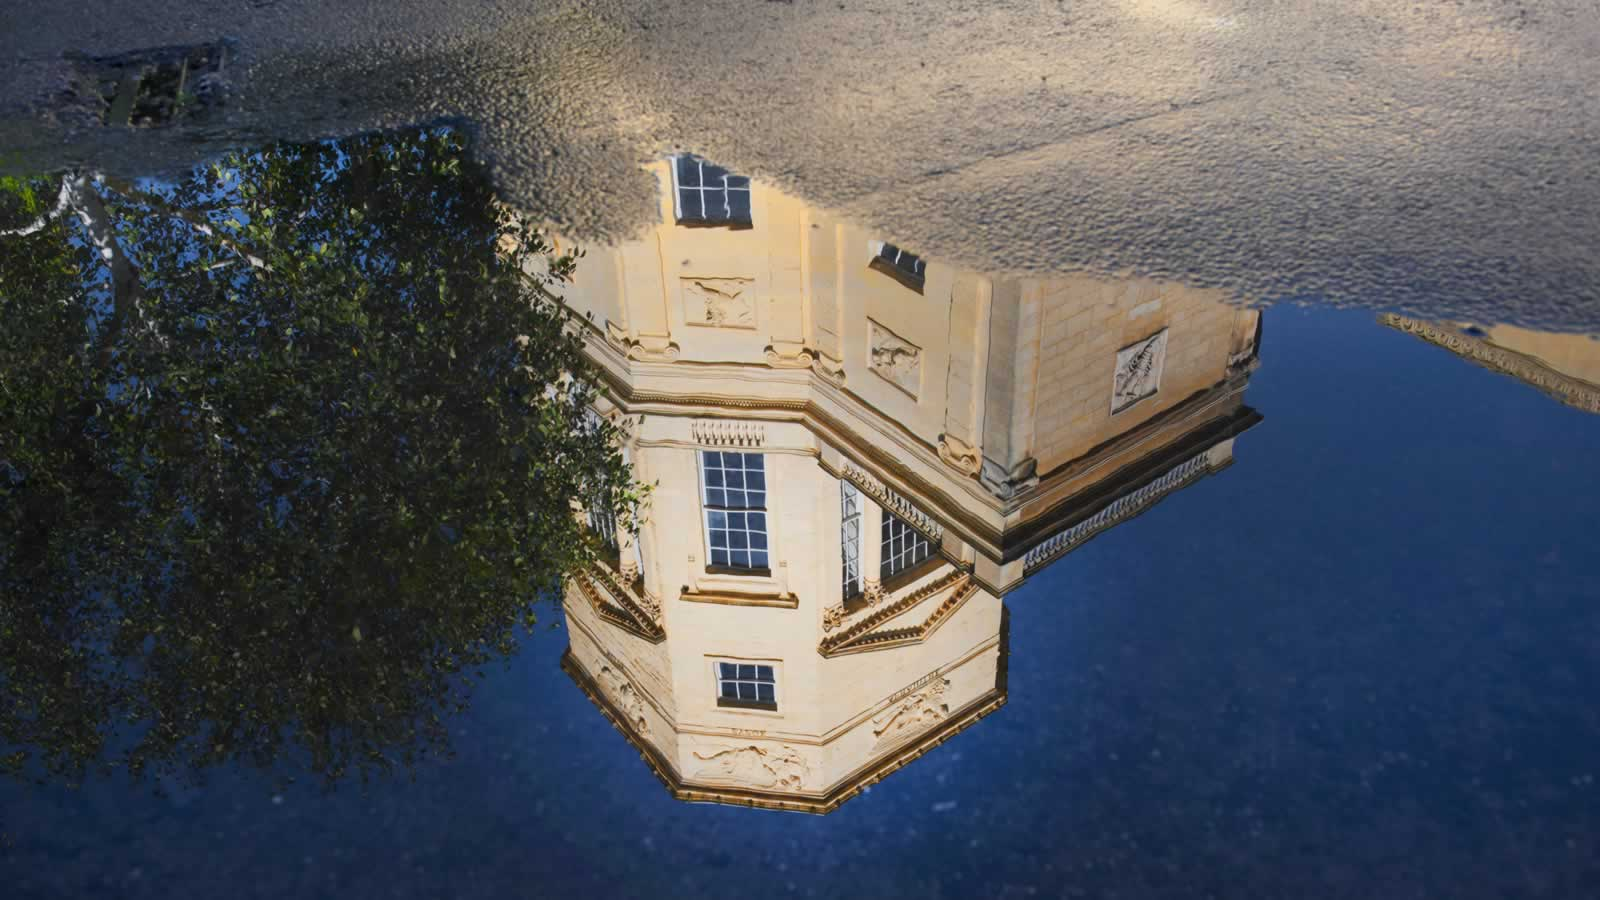 Reflecting the Radcliffe Observatory